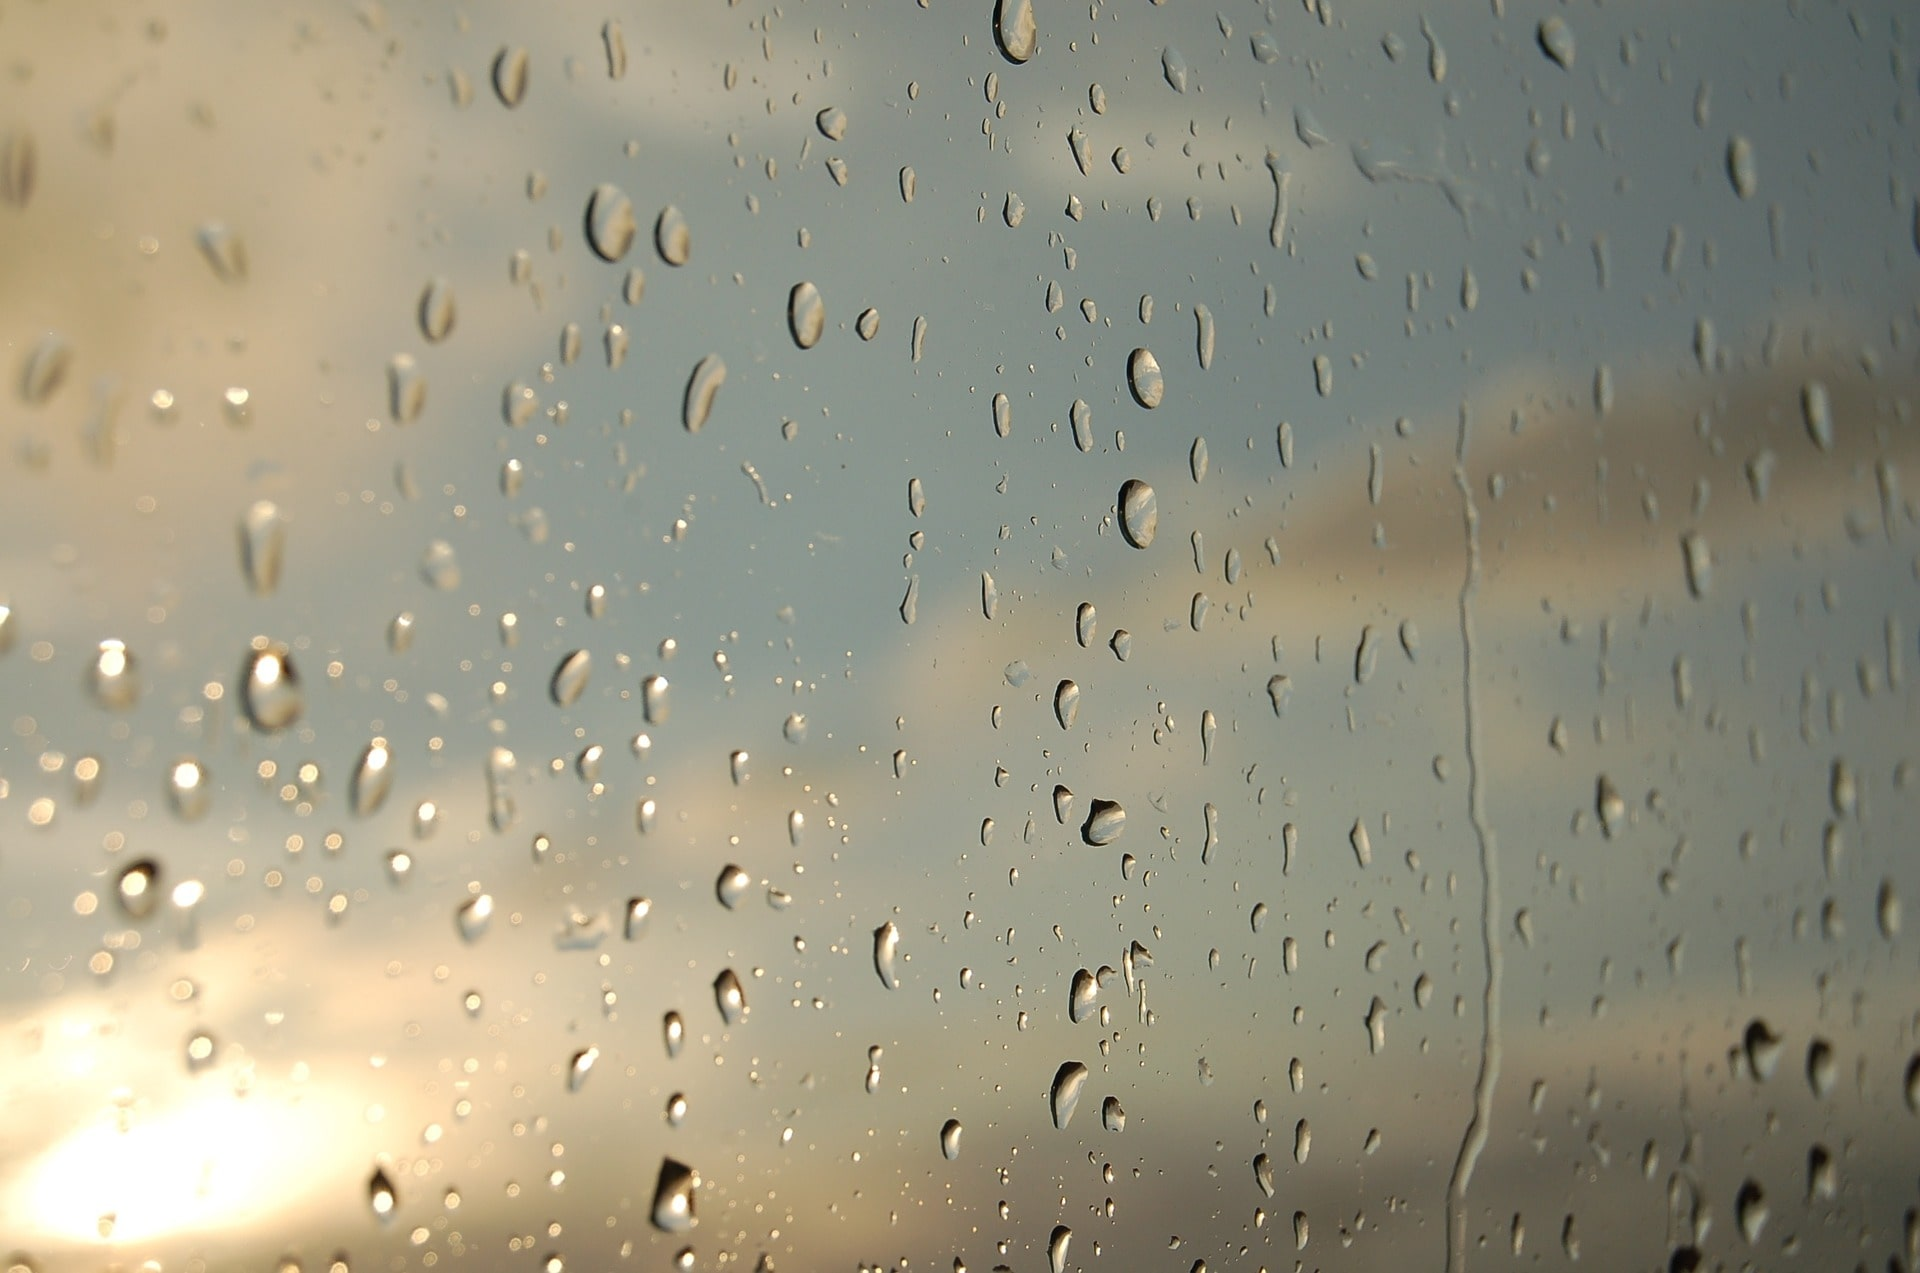 Droplets of rain against a window